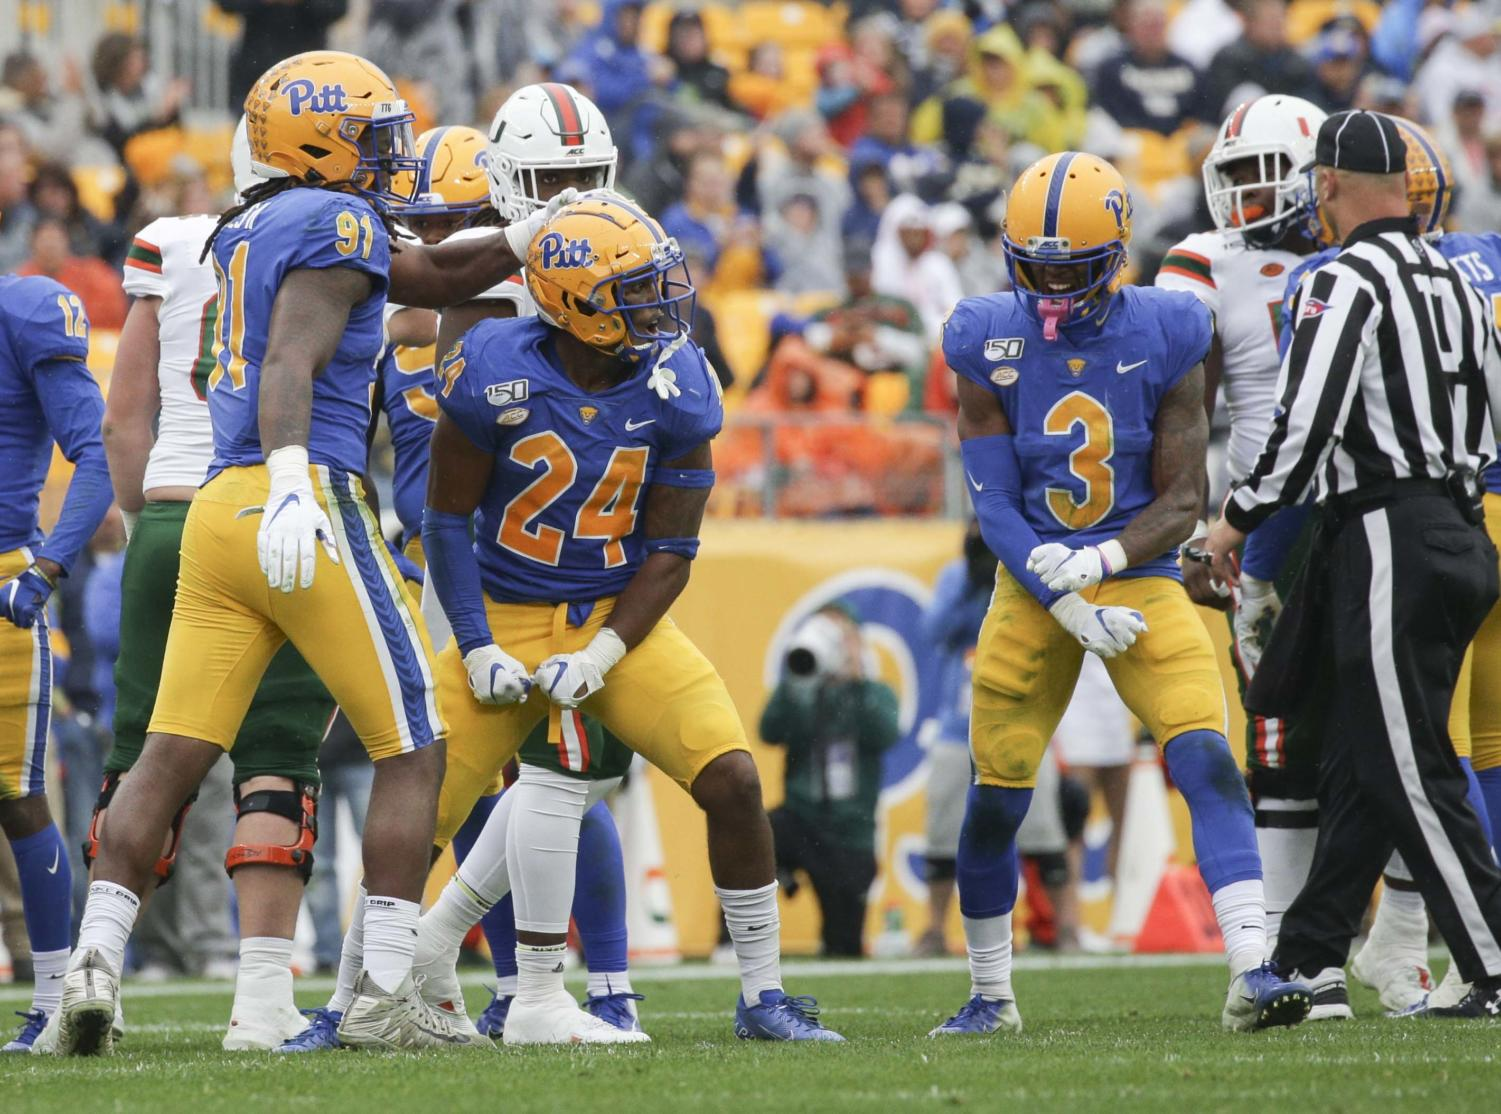 Pitt football's ACC schedule was revealed Wednesday.